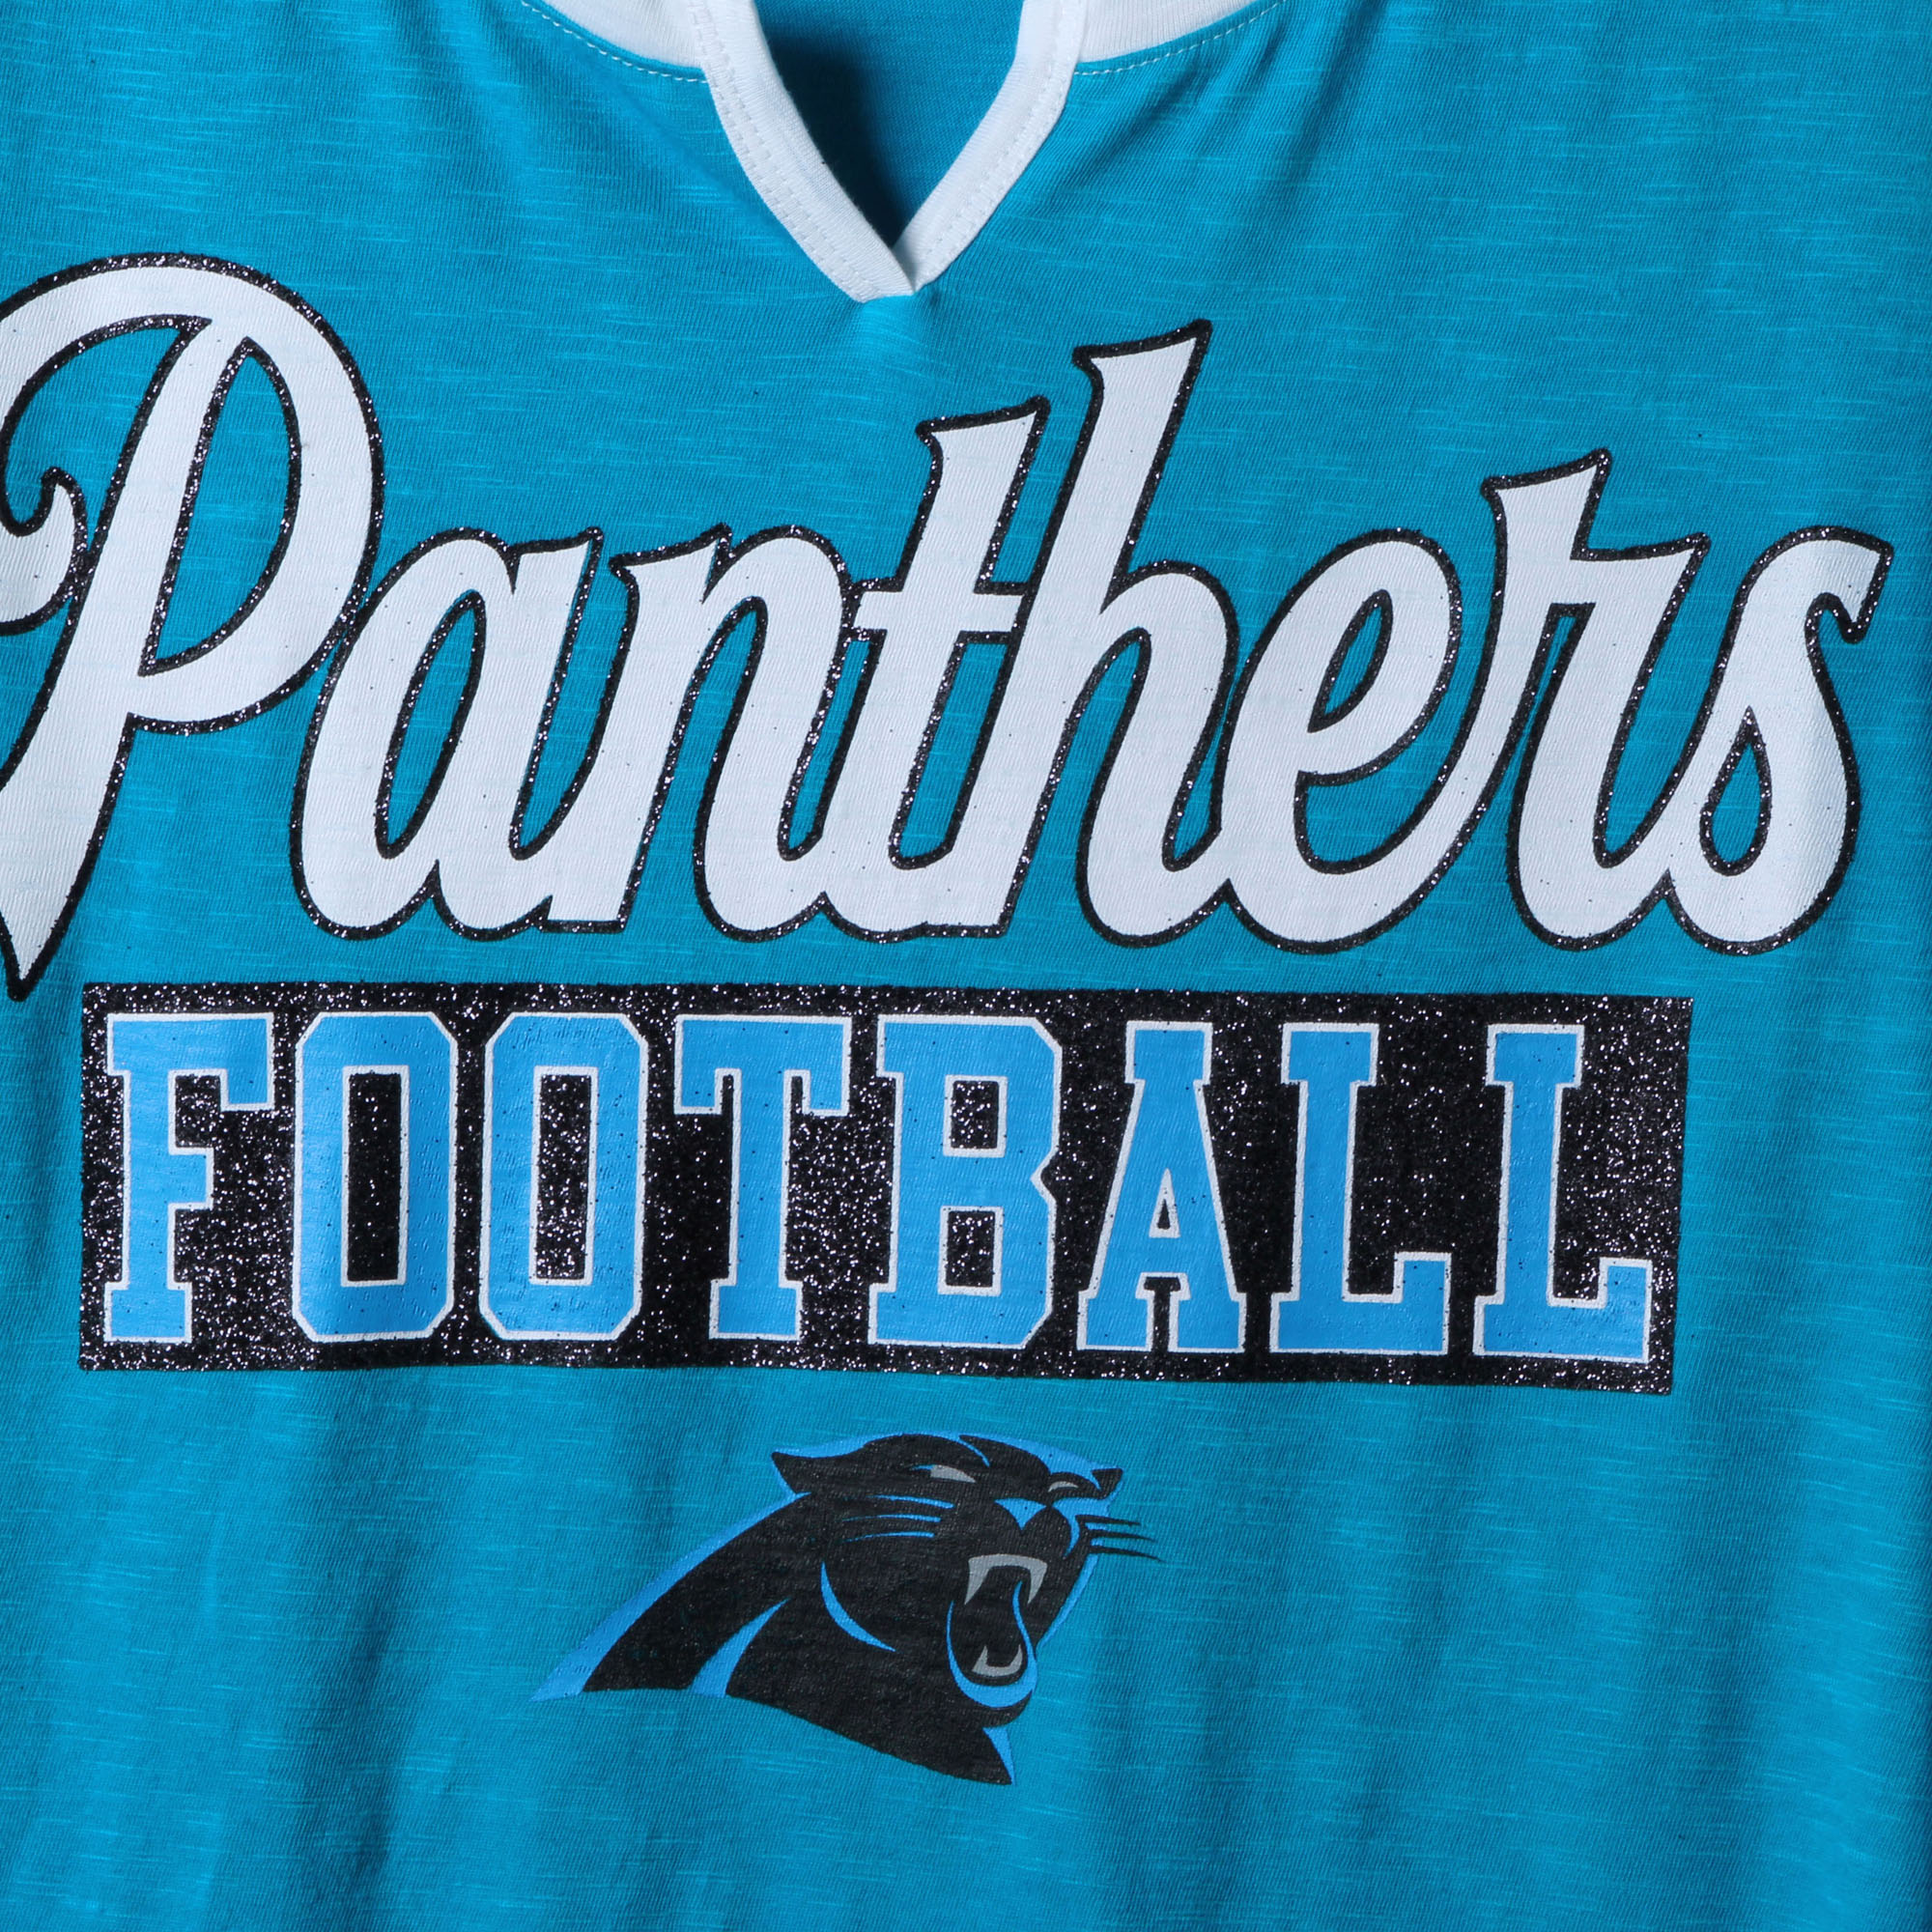 Carolina Panthers New Era Women s Glitter Slub 3 4-Sleeve Raglan V-Notch T- Shirt - Blue White - Walmart.com 76d5a6343